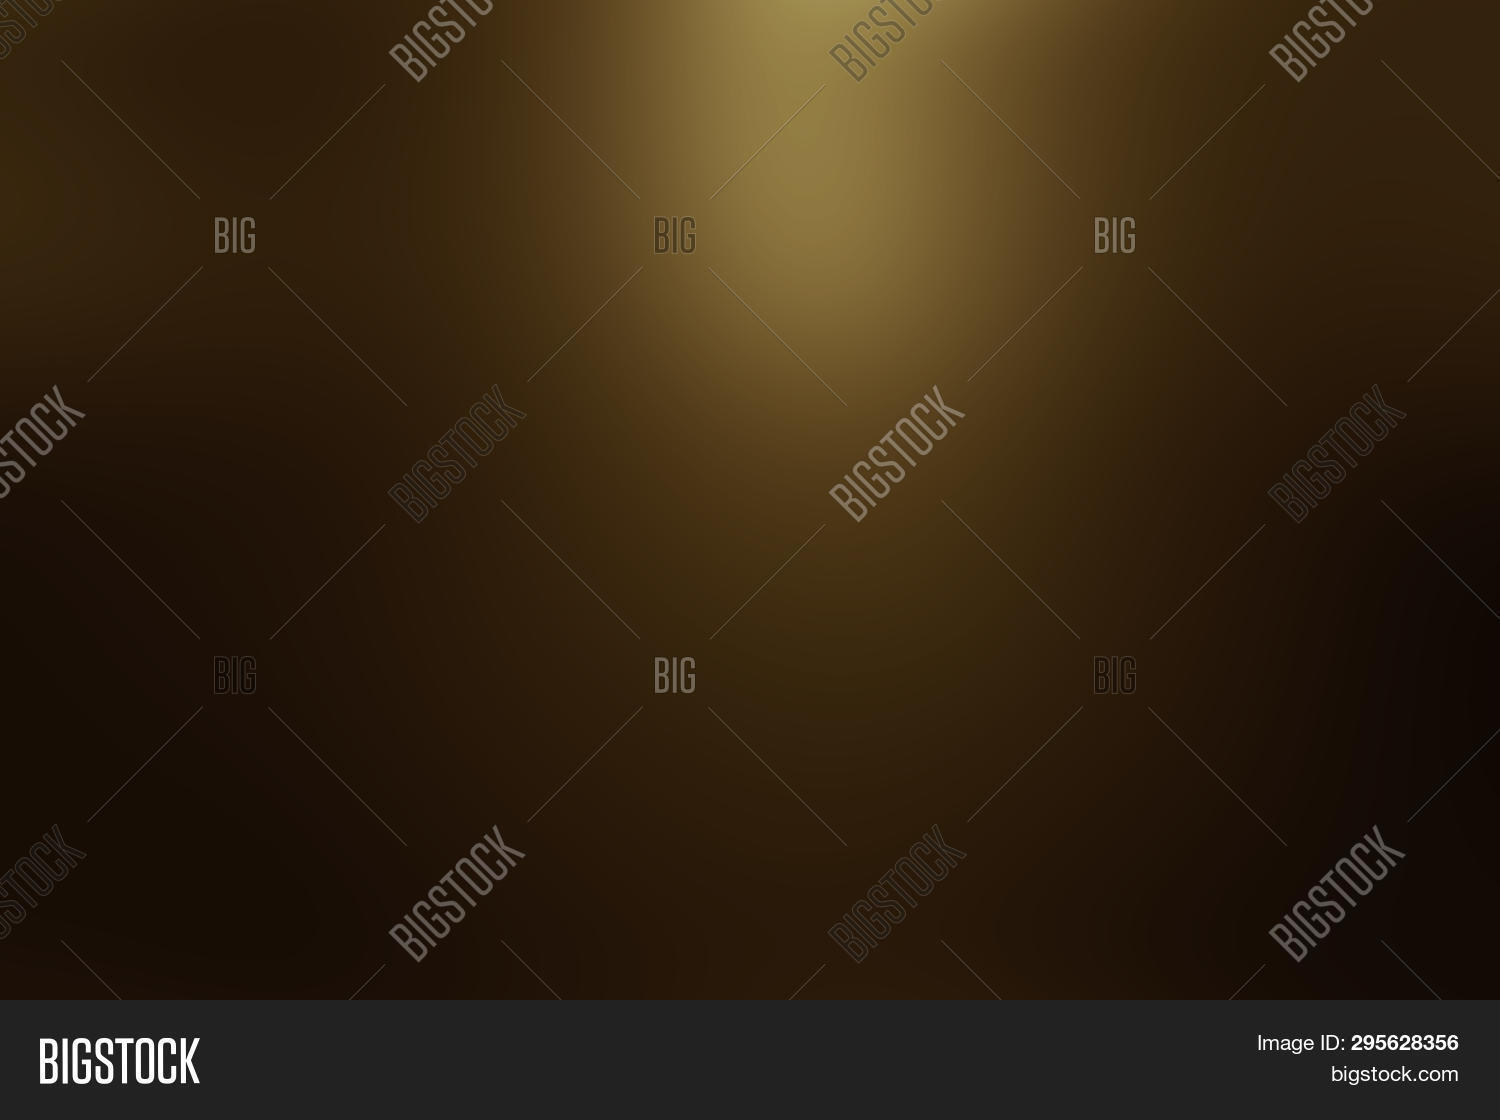 Abstract Dark Gold Image Photo Free Trial Bigstock